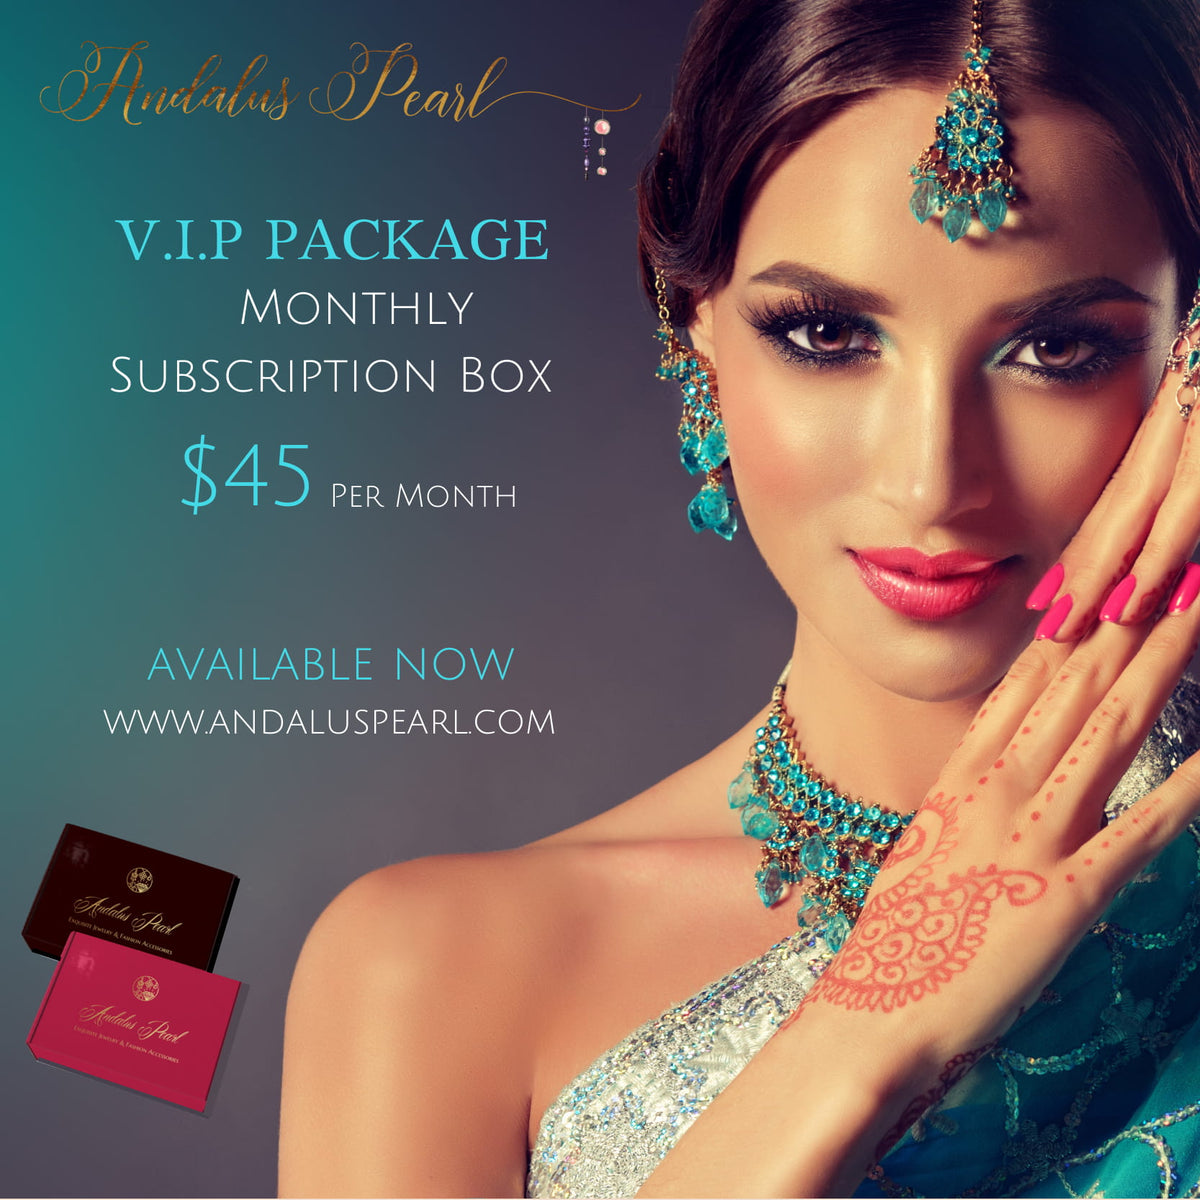 VIP Package Subscription Box